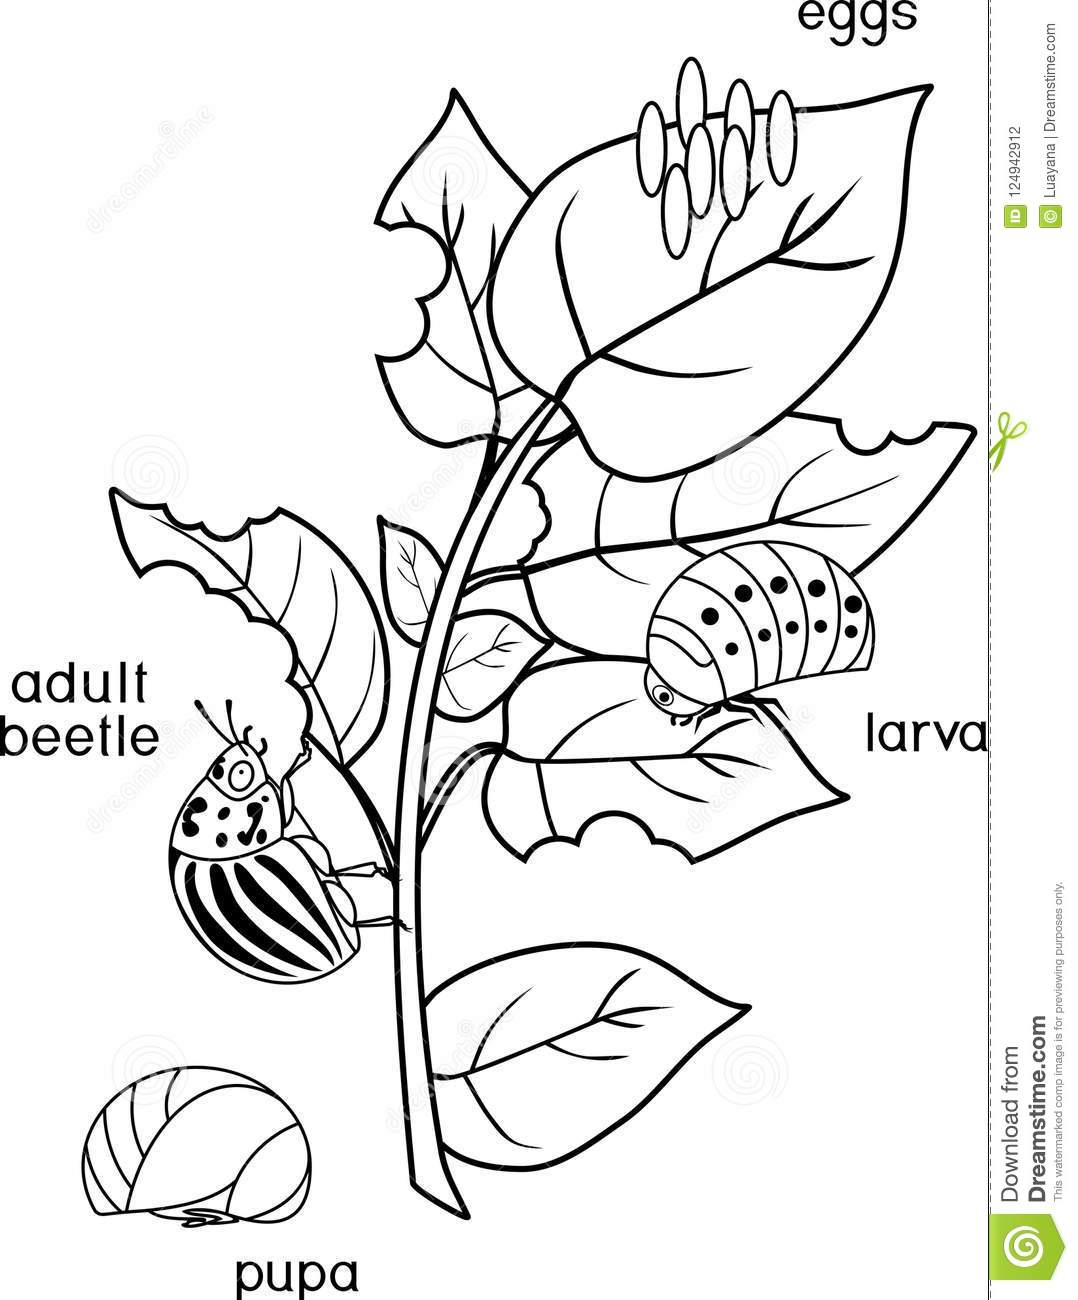 coloring page different stages of development of colorado potato Ata Chapter List coloring page with different stages of development of colorado potato beetle or leptinotarsa decemlineata on damaged potato leaf